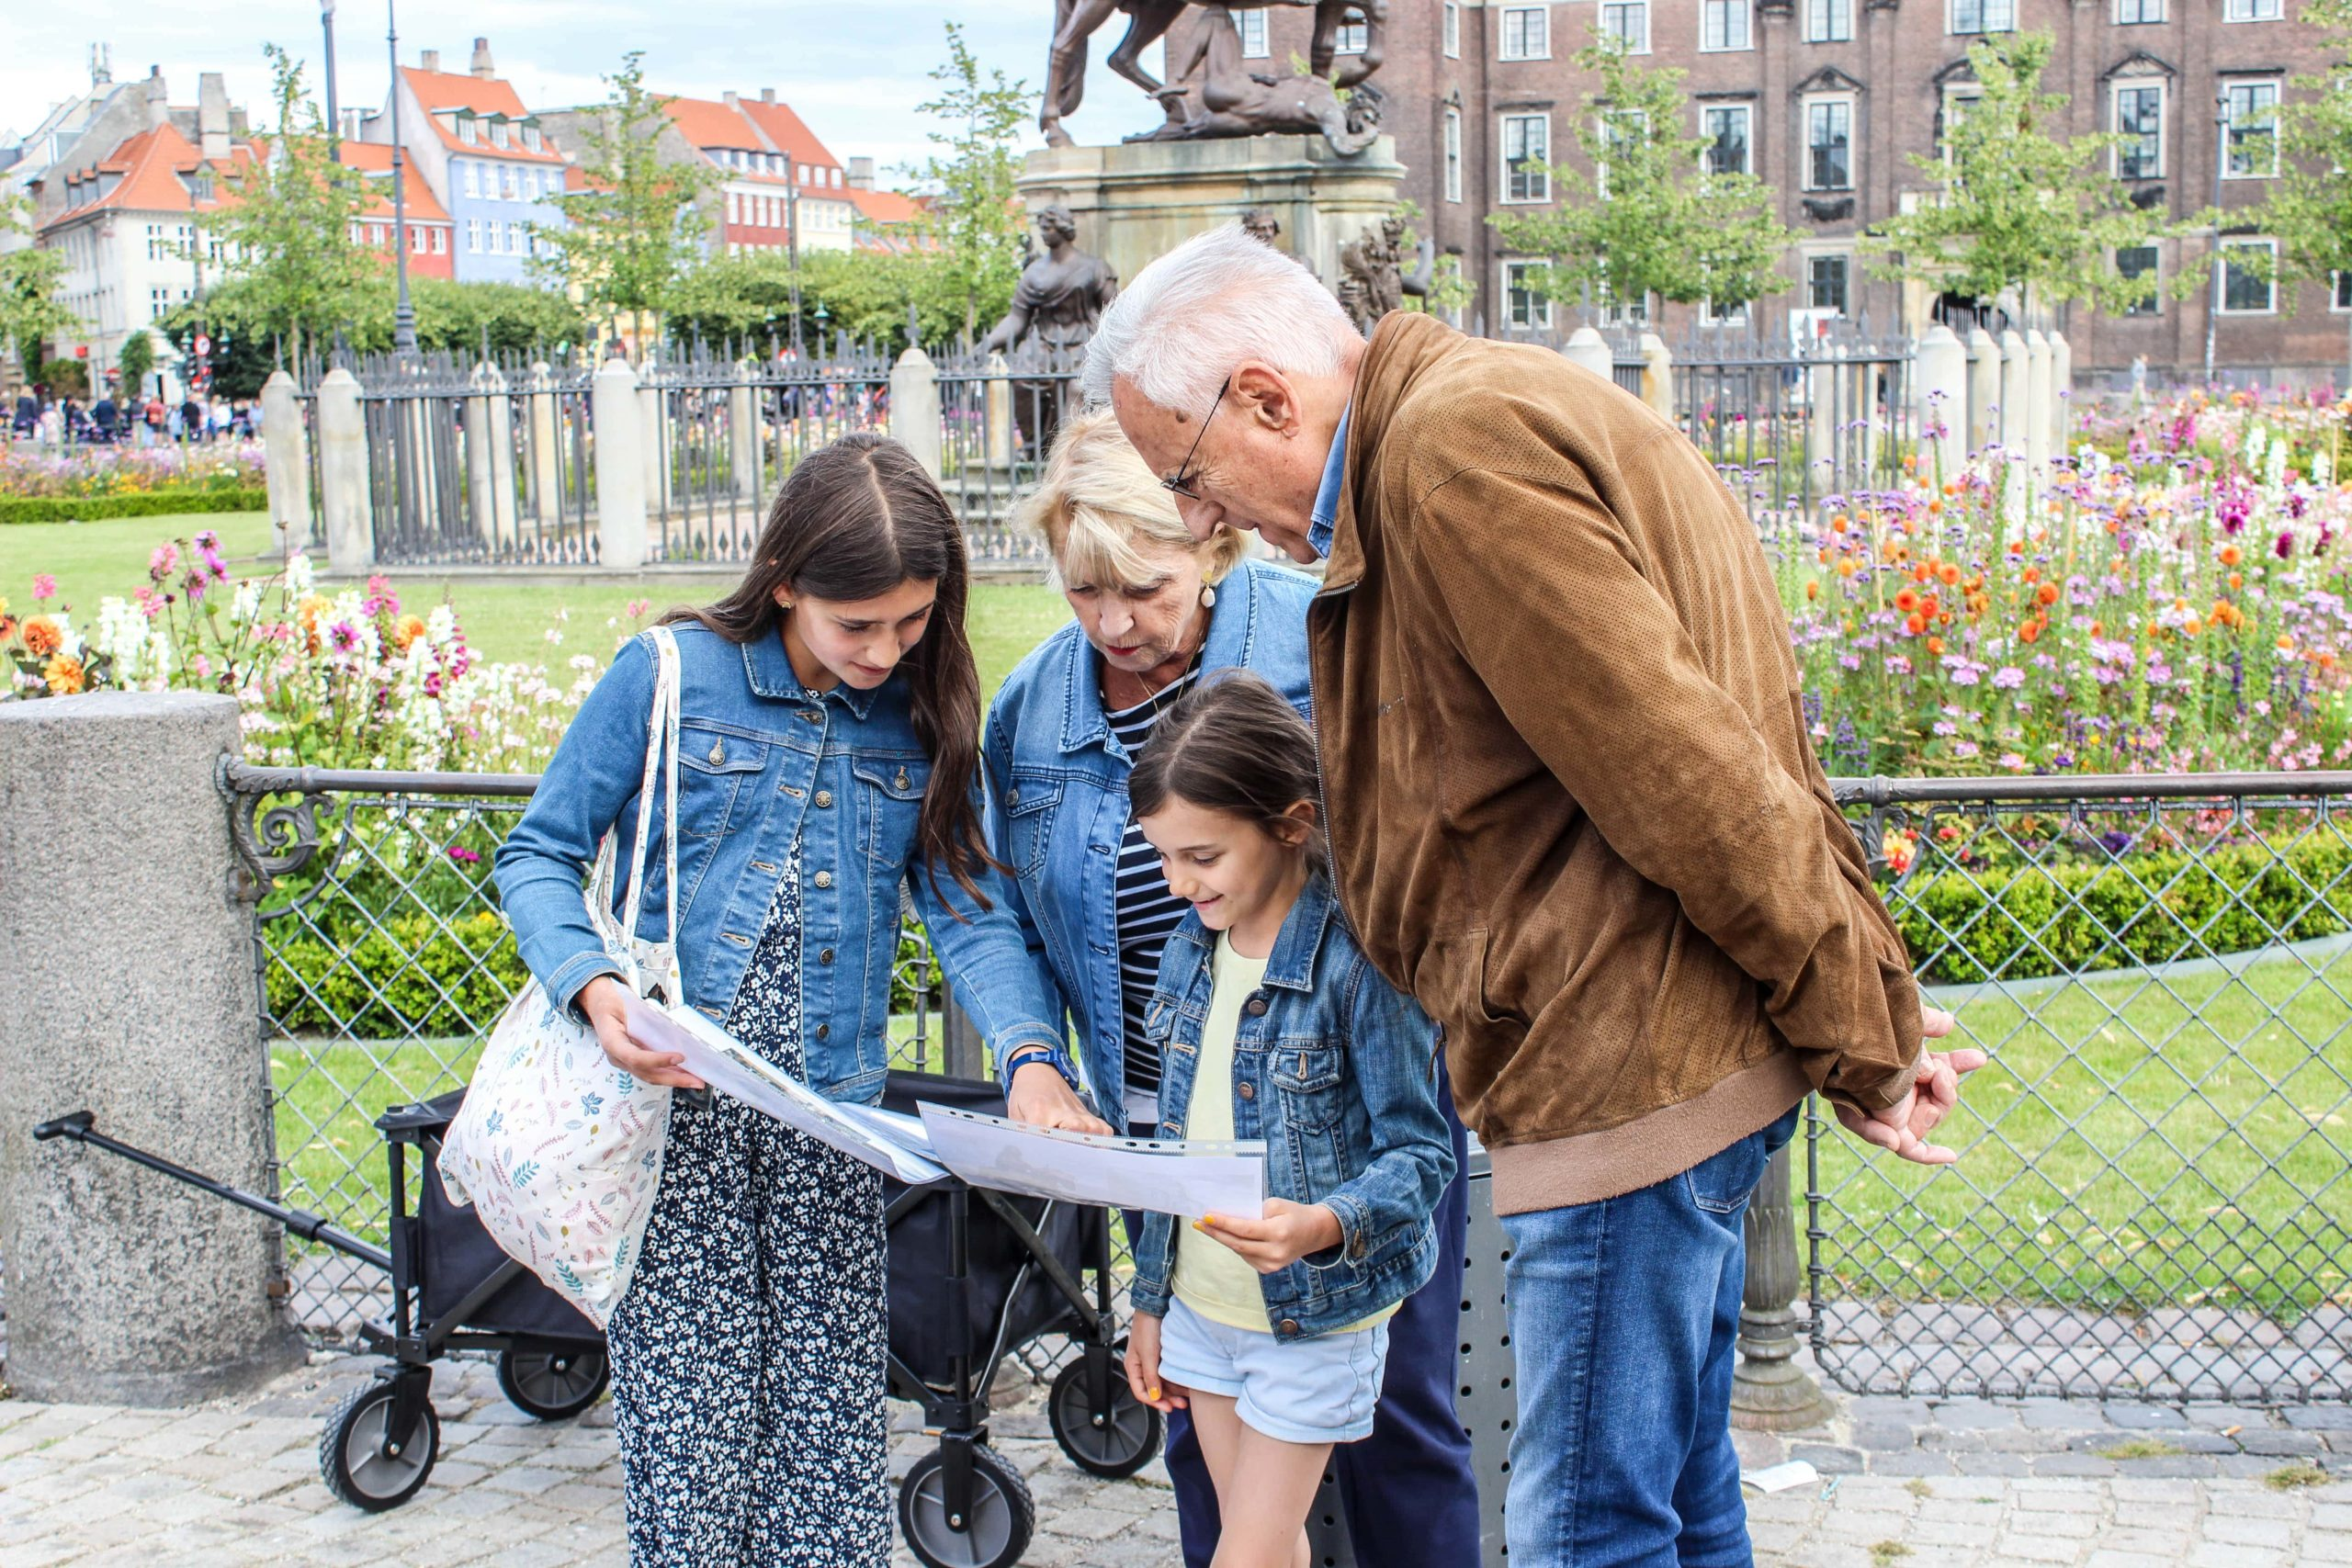 Scandikidstours-Copenhague-visites-guidées-enfants-3-min